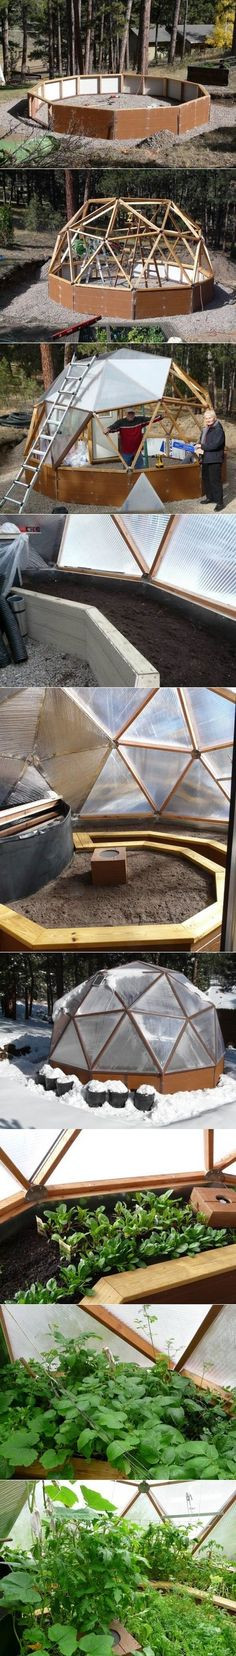 DIY Geodesic Dome Greenhouse https://www.youtube.com/user/AWorld4Change www.AWorld4Change.com #sustainablechange